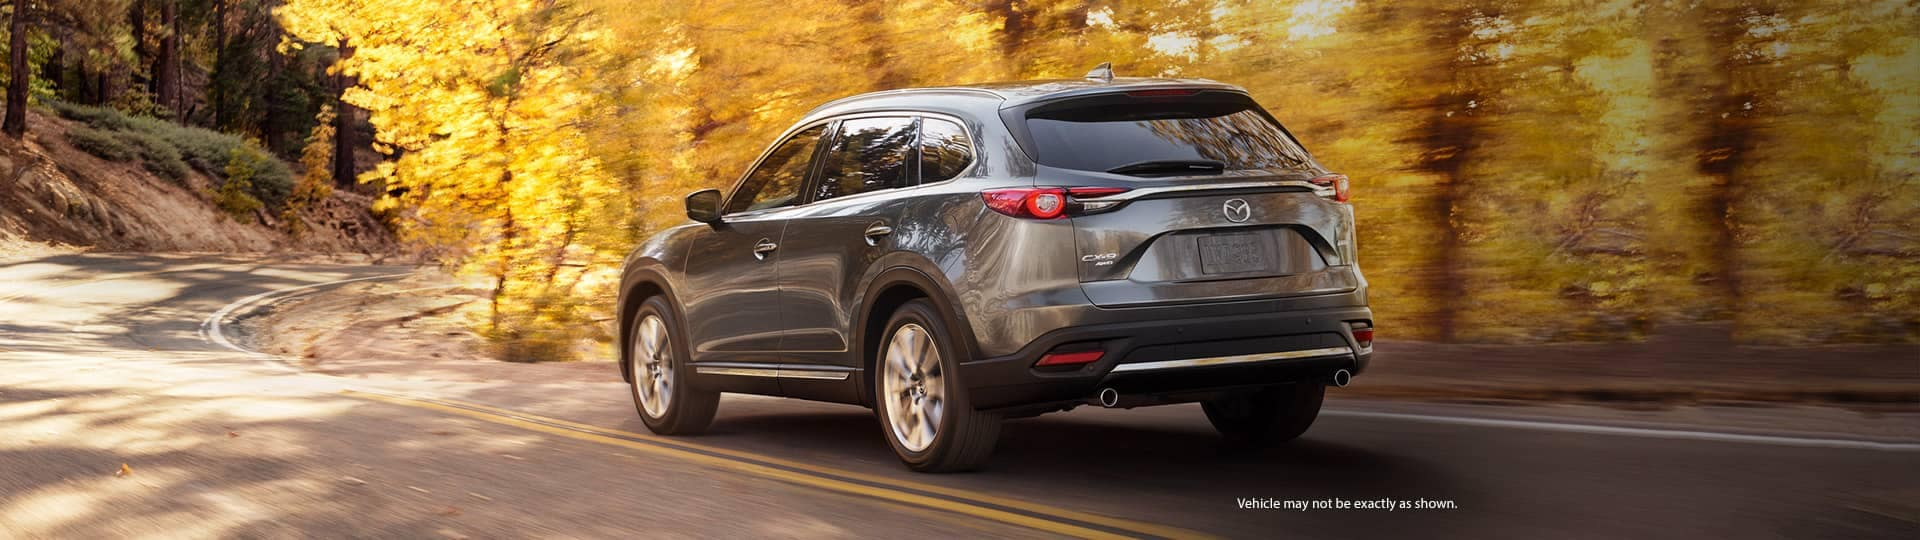 2019 Mazda CX-9 driving in autumn